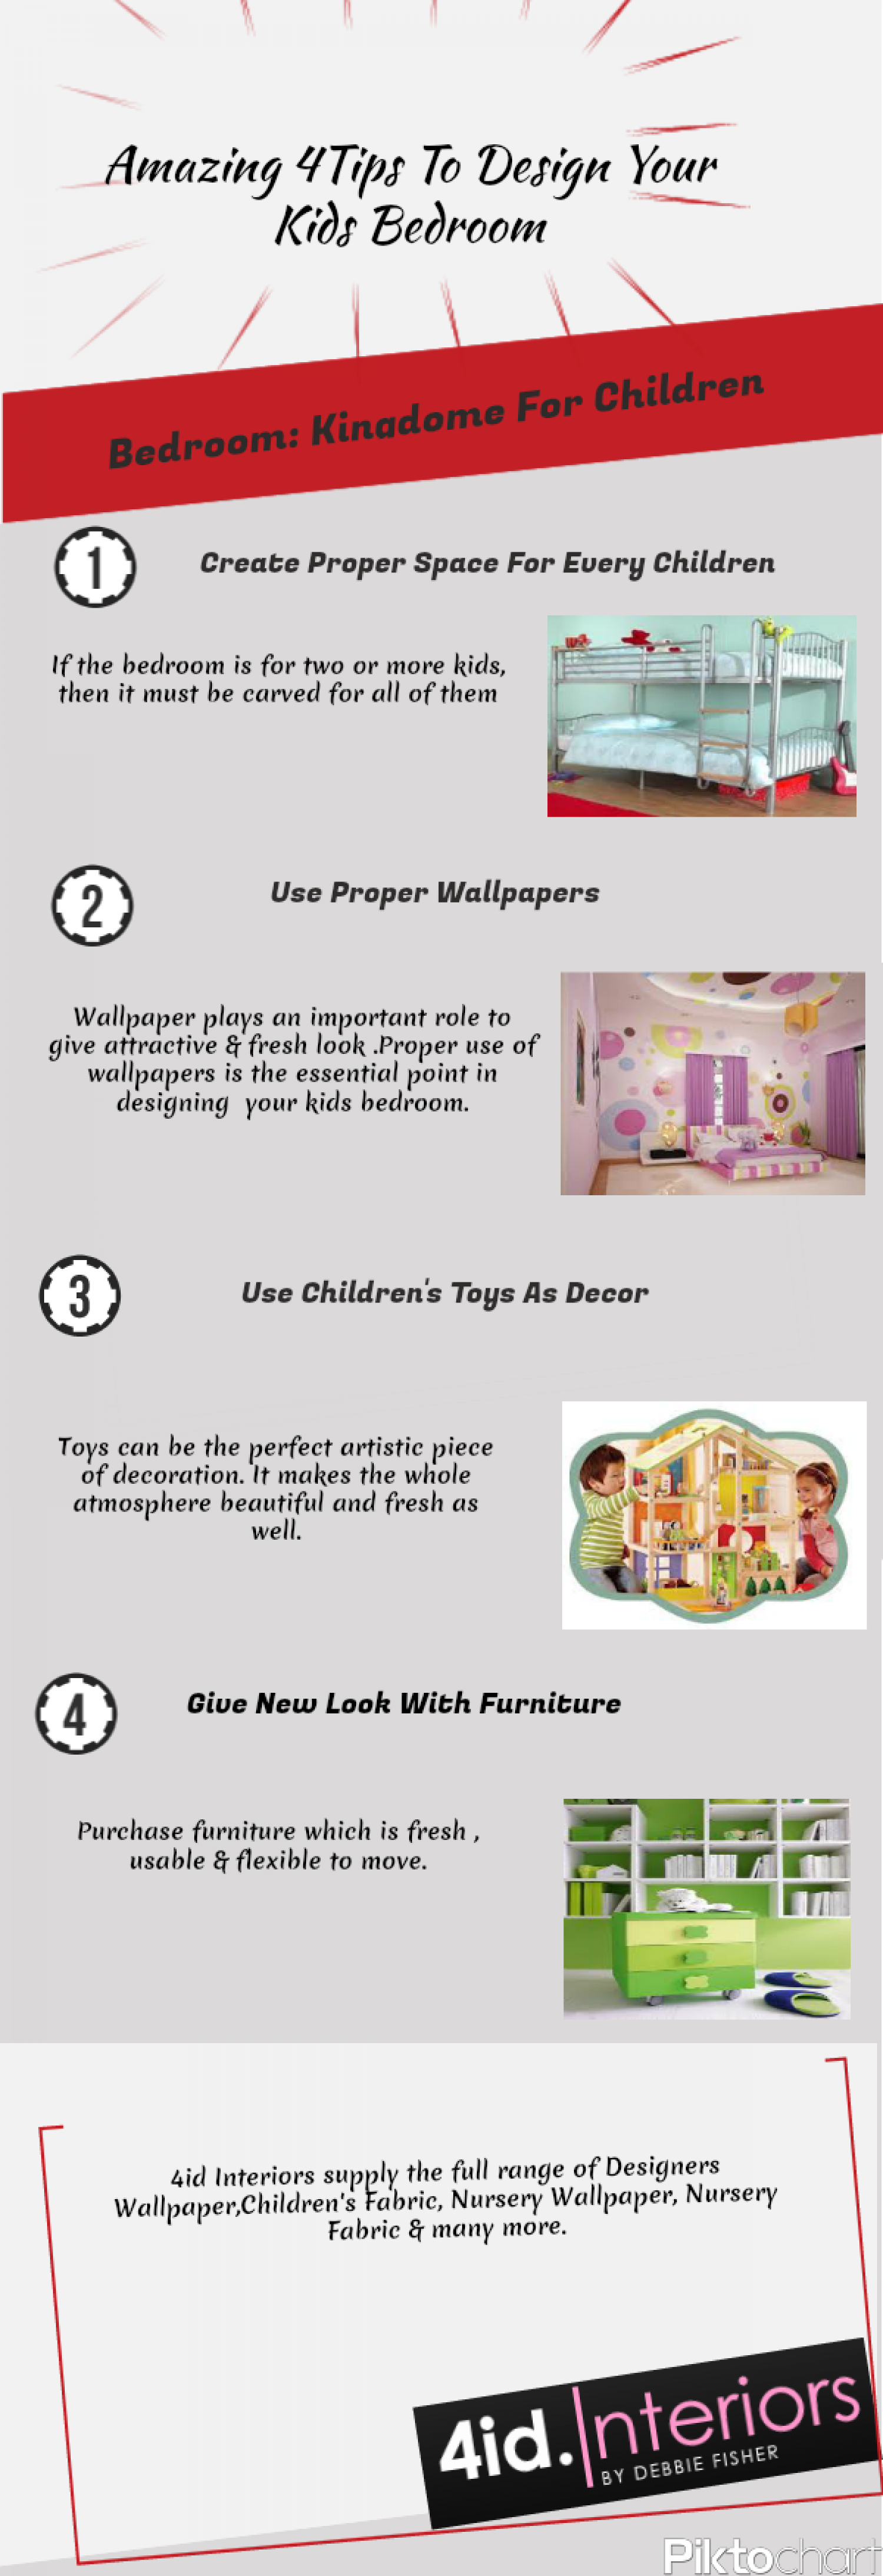 Amazing 4 Tips To Design Your Kids Bedroom Infographic